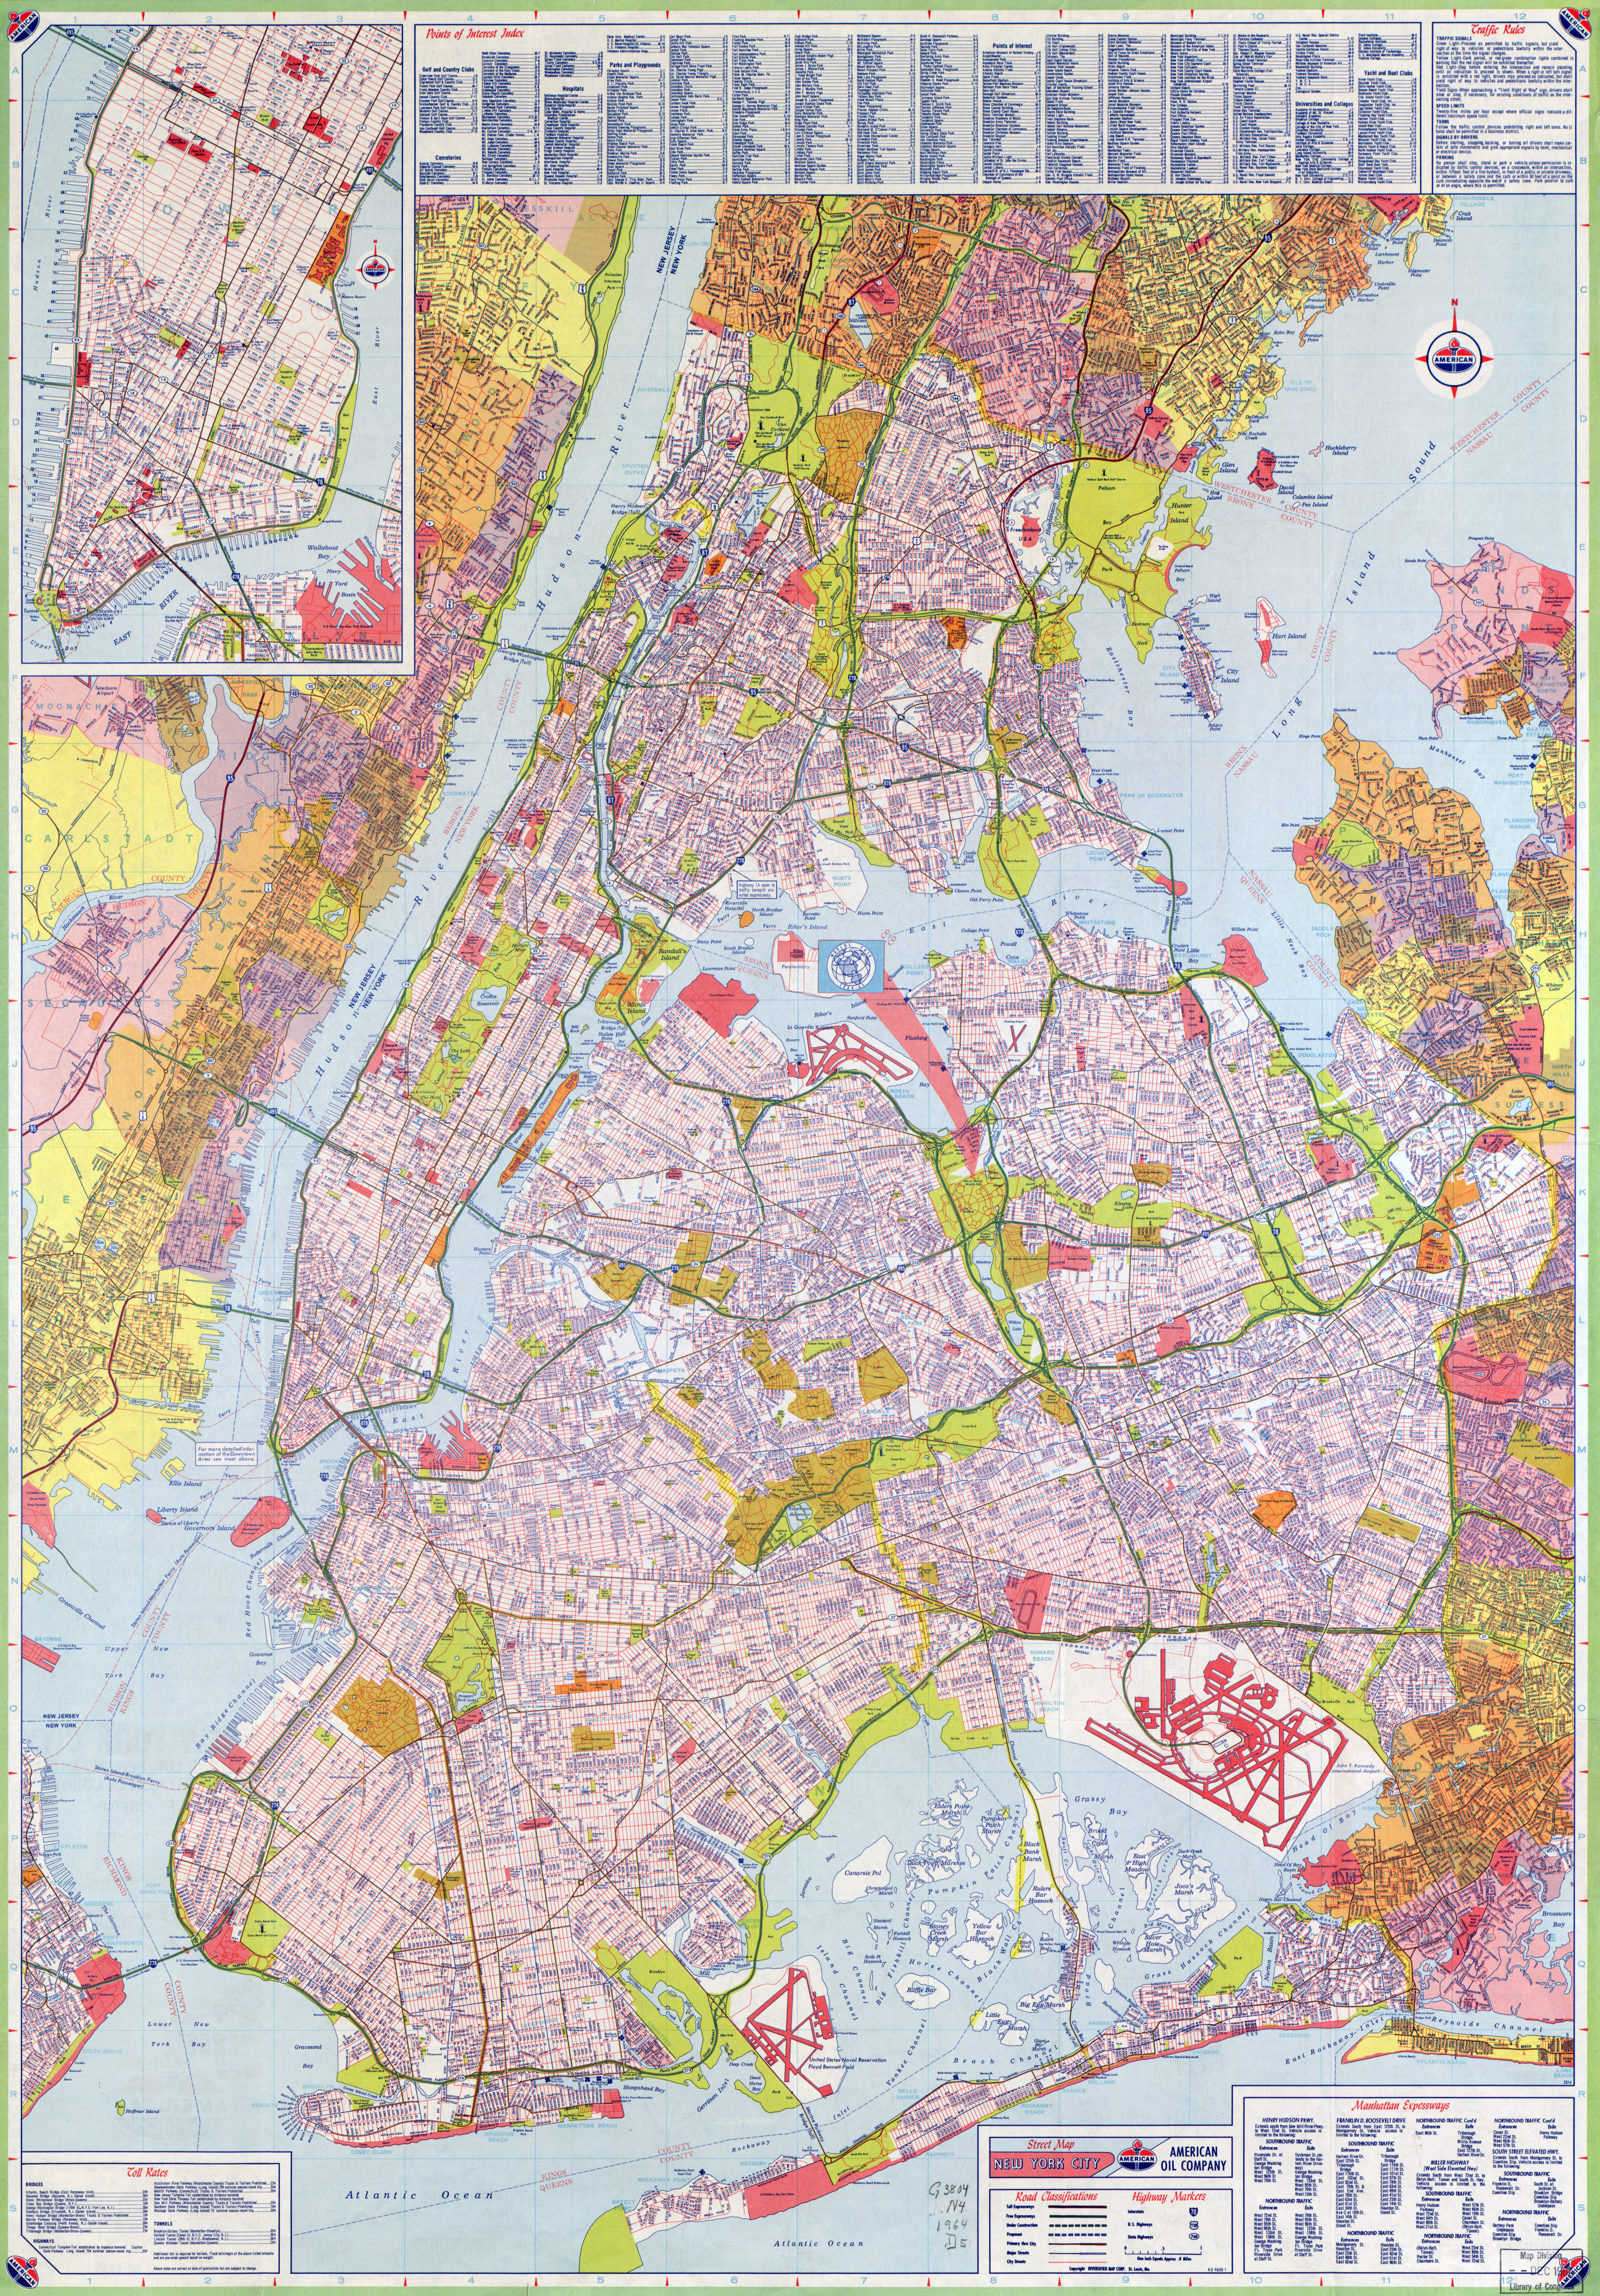 Large scale HiRes detailed full road map of New York city USA